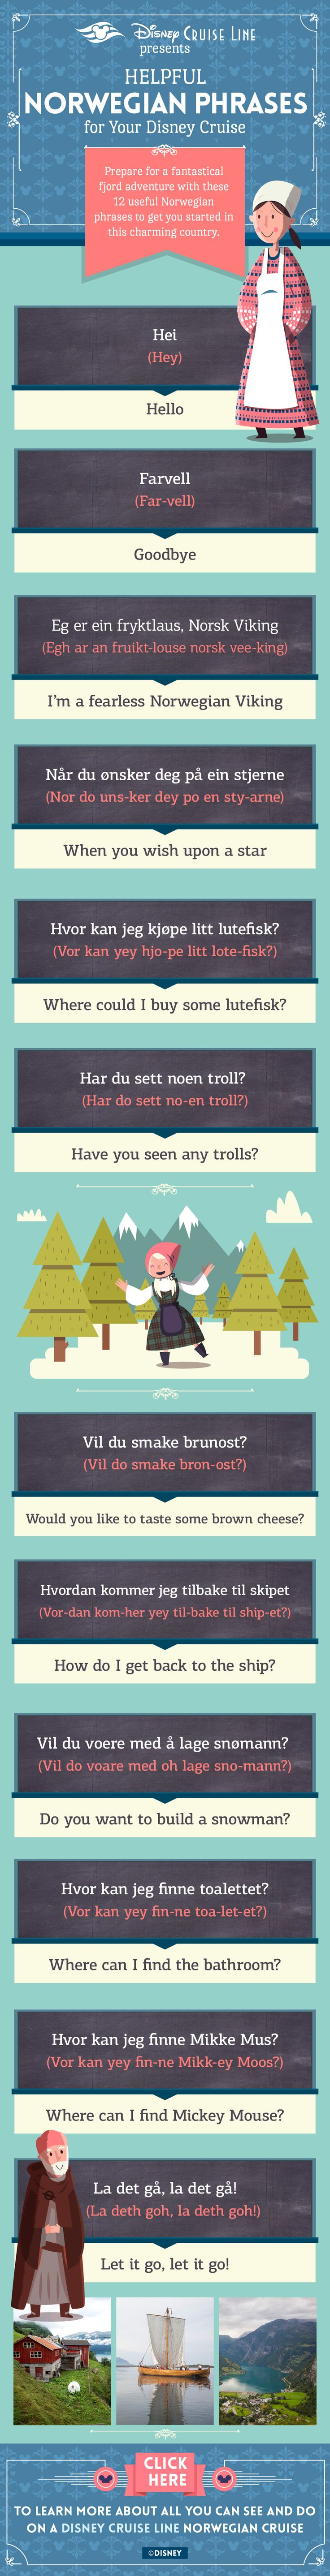 Disney Cruise Phrases | Norsk